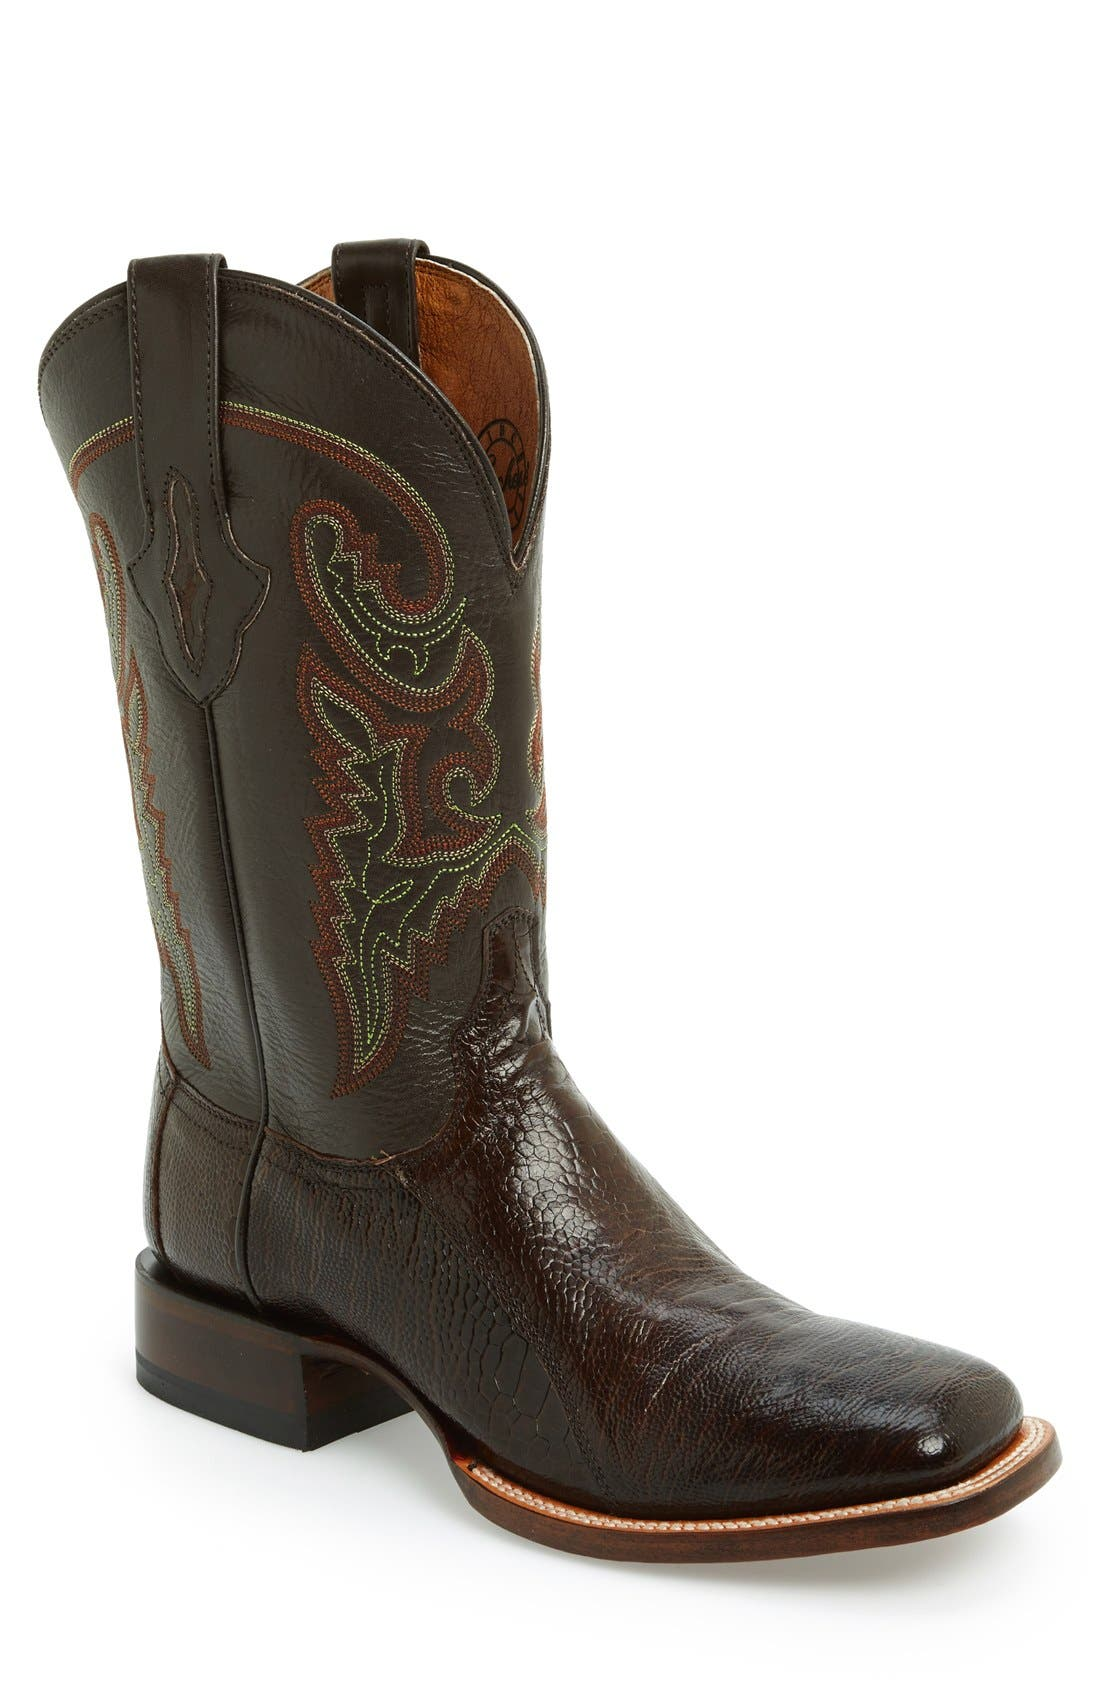 Main Image - Lucchese Square Toe Leather Boot (Men)